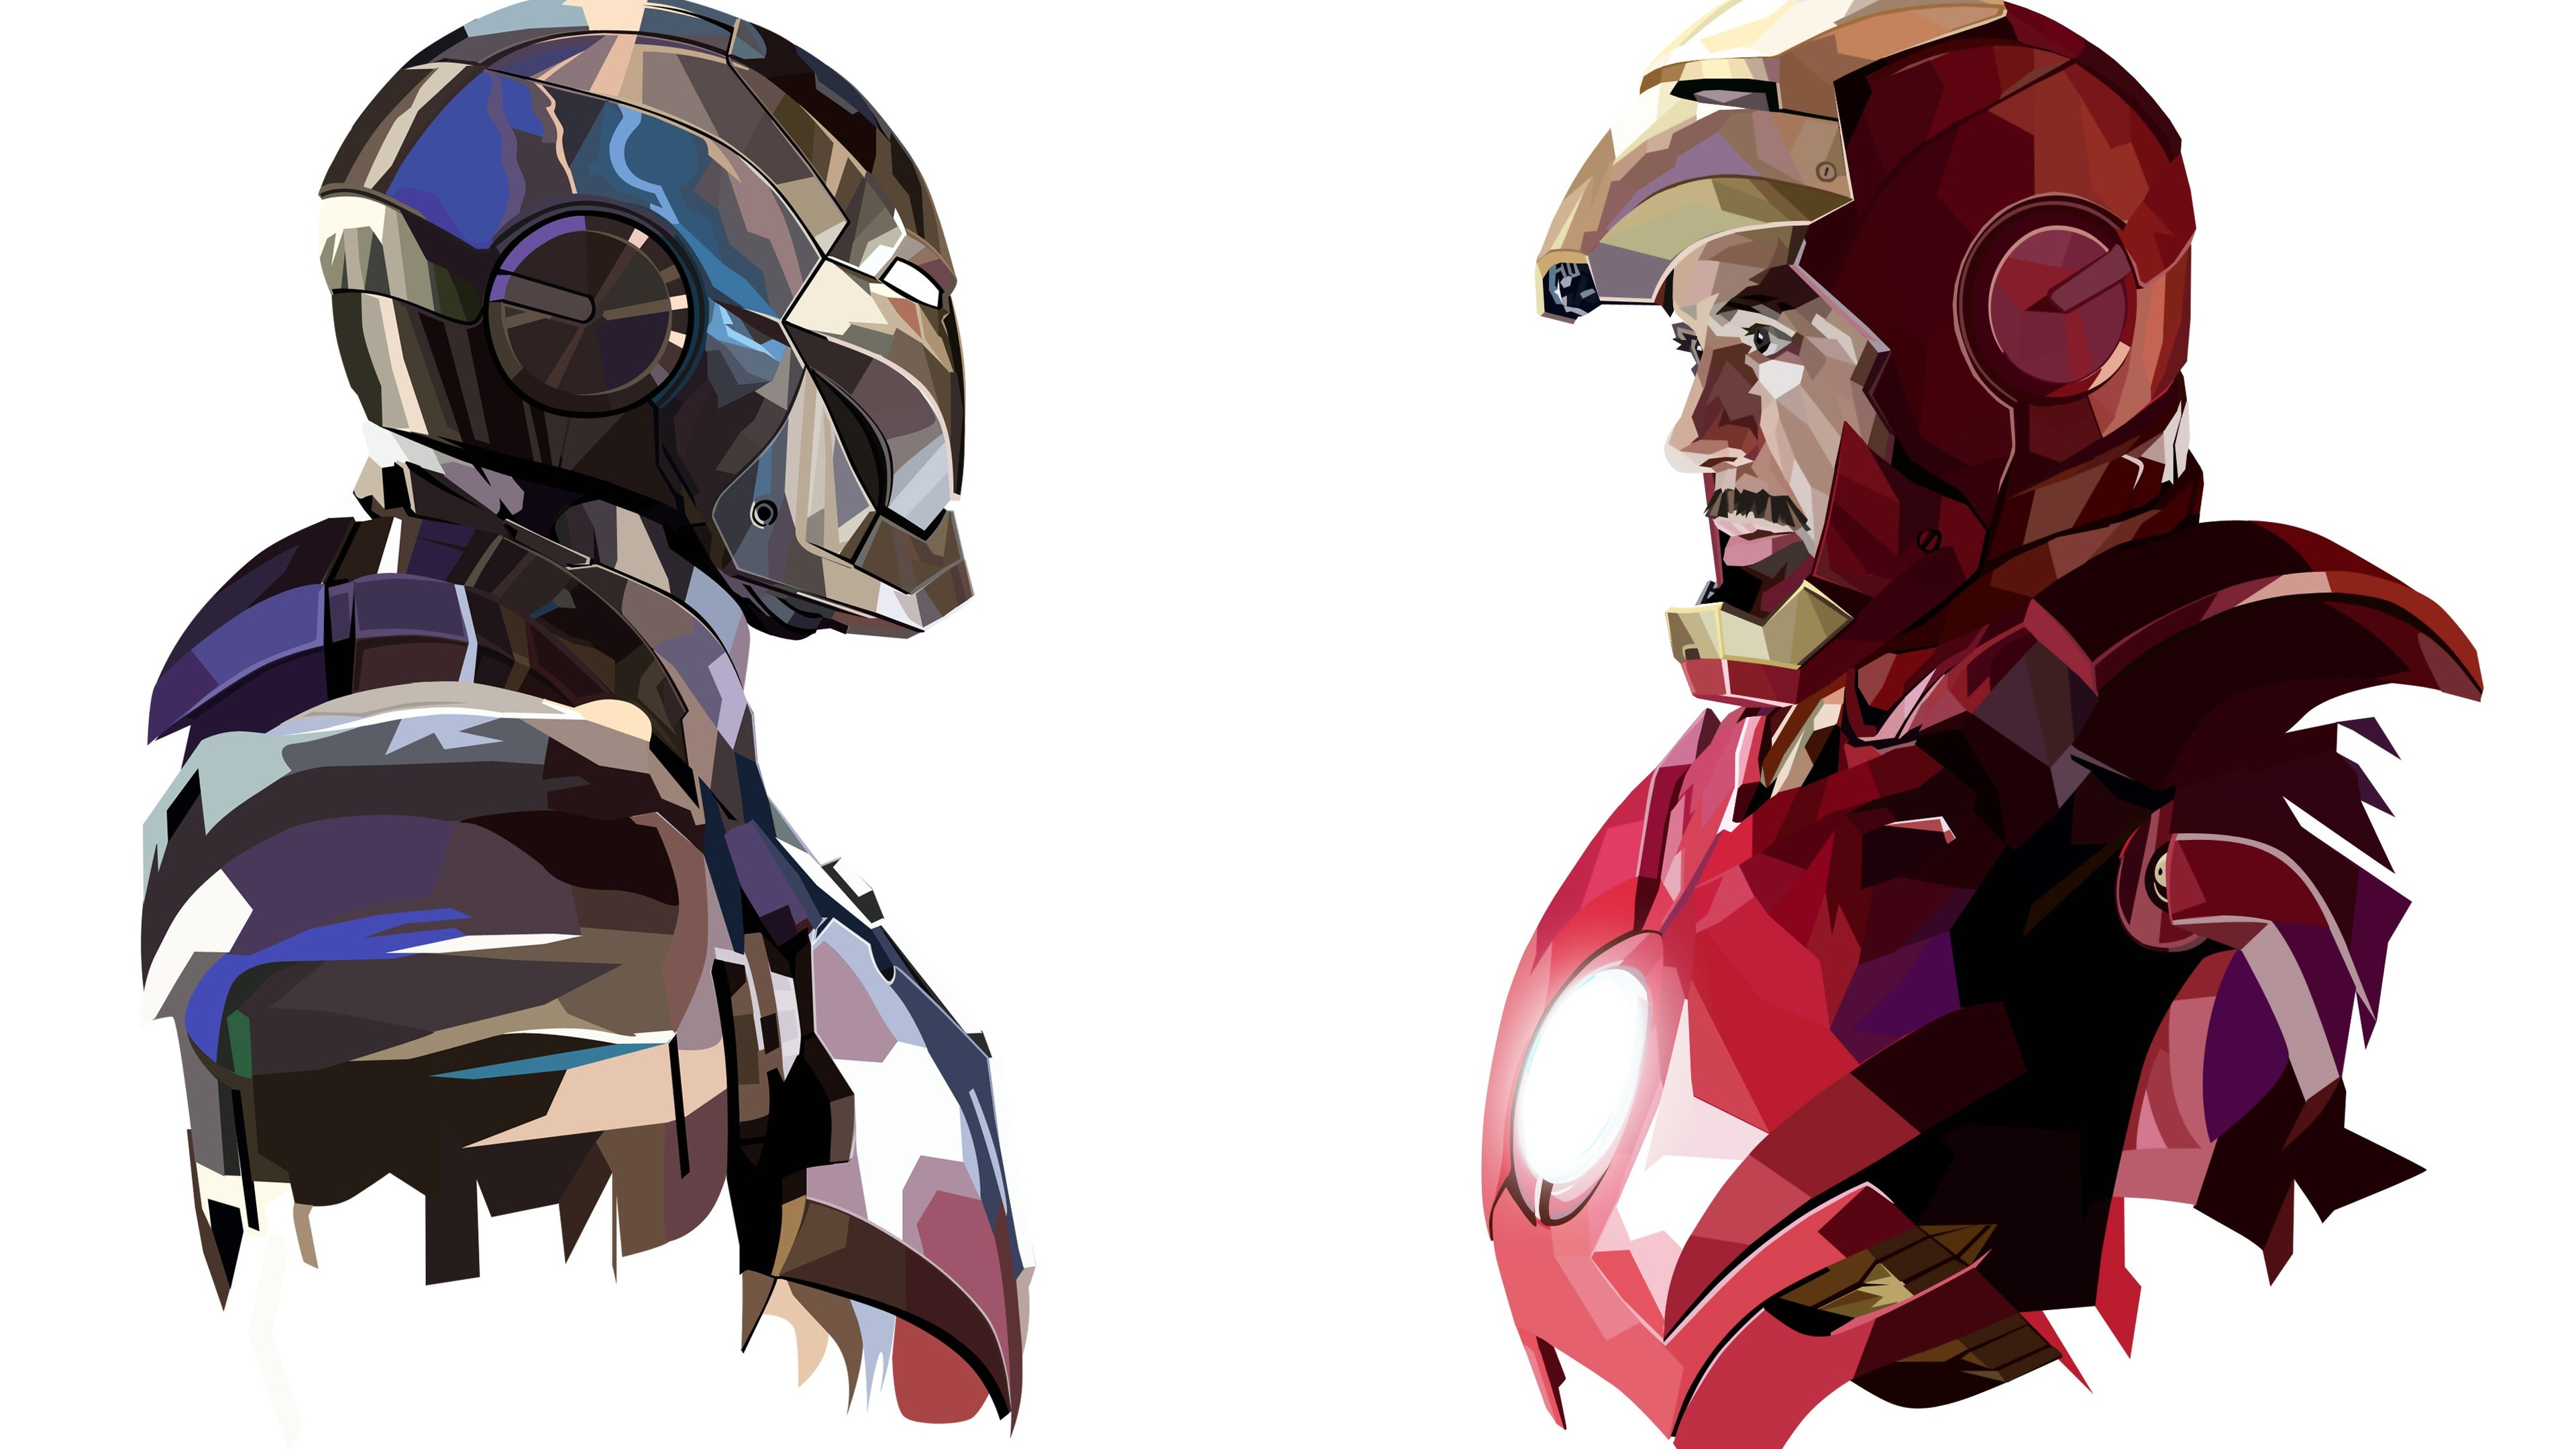 tony stark iron man art 4k 1540748636 - Tony Stark Iron Man Art 4k - iron man wallpapers, digital art wallpapers, artist wallpapers